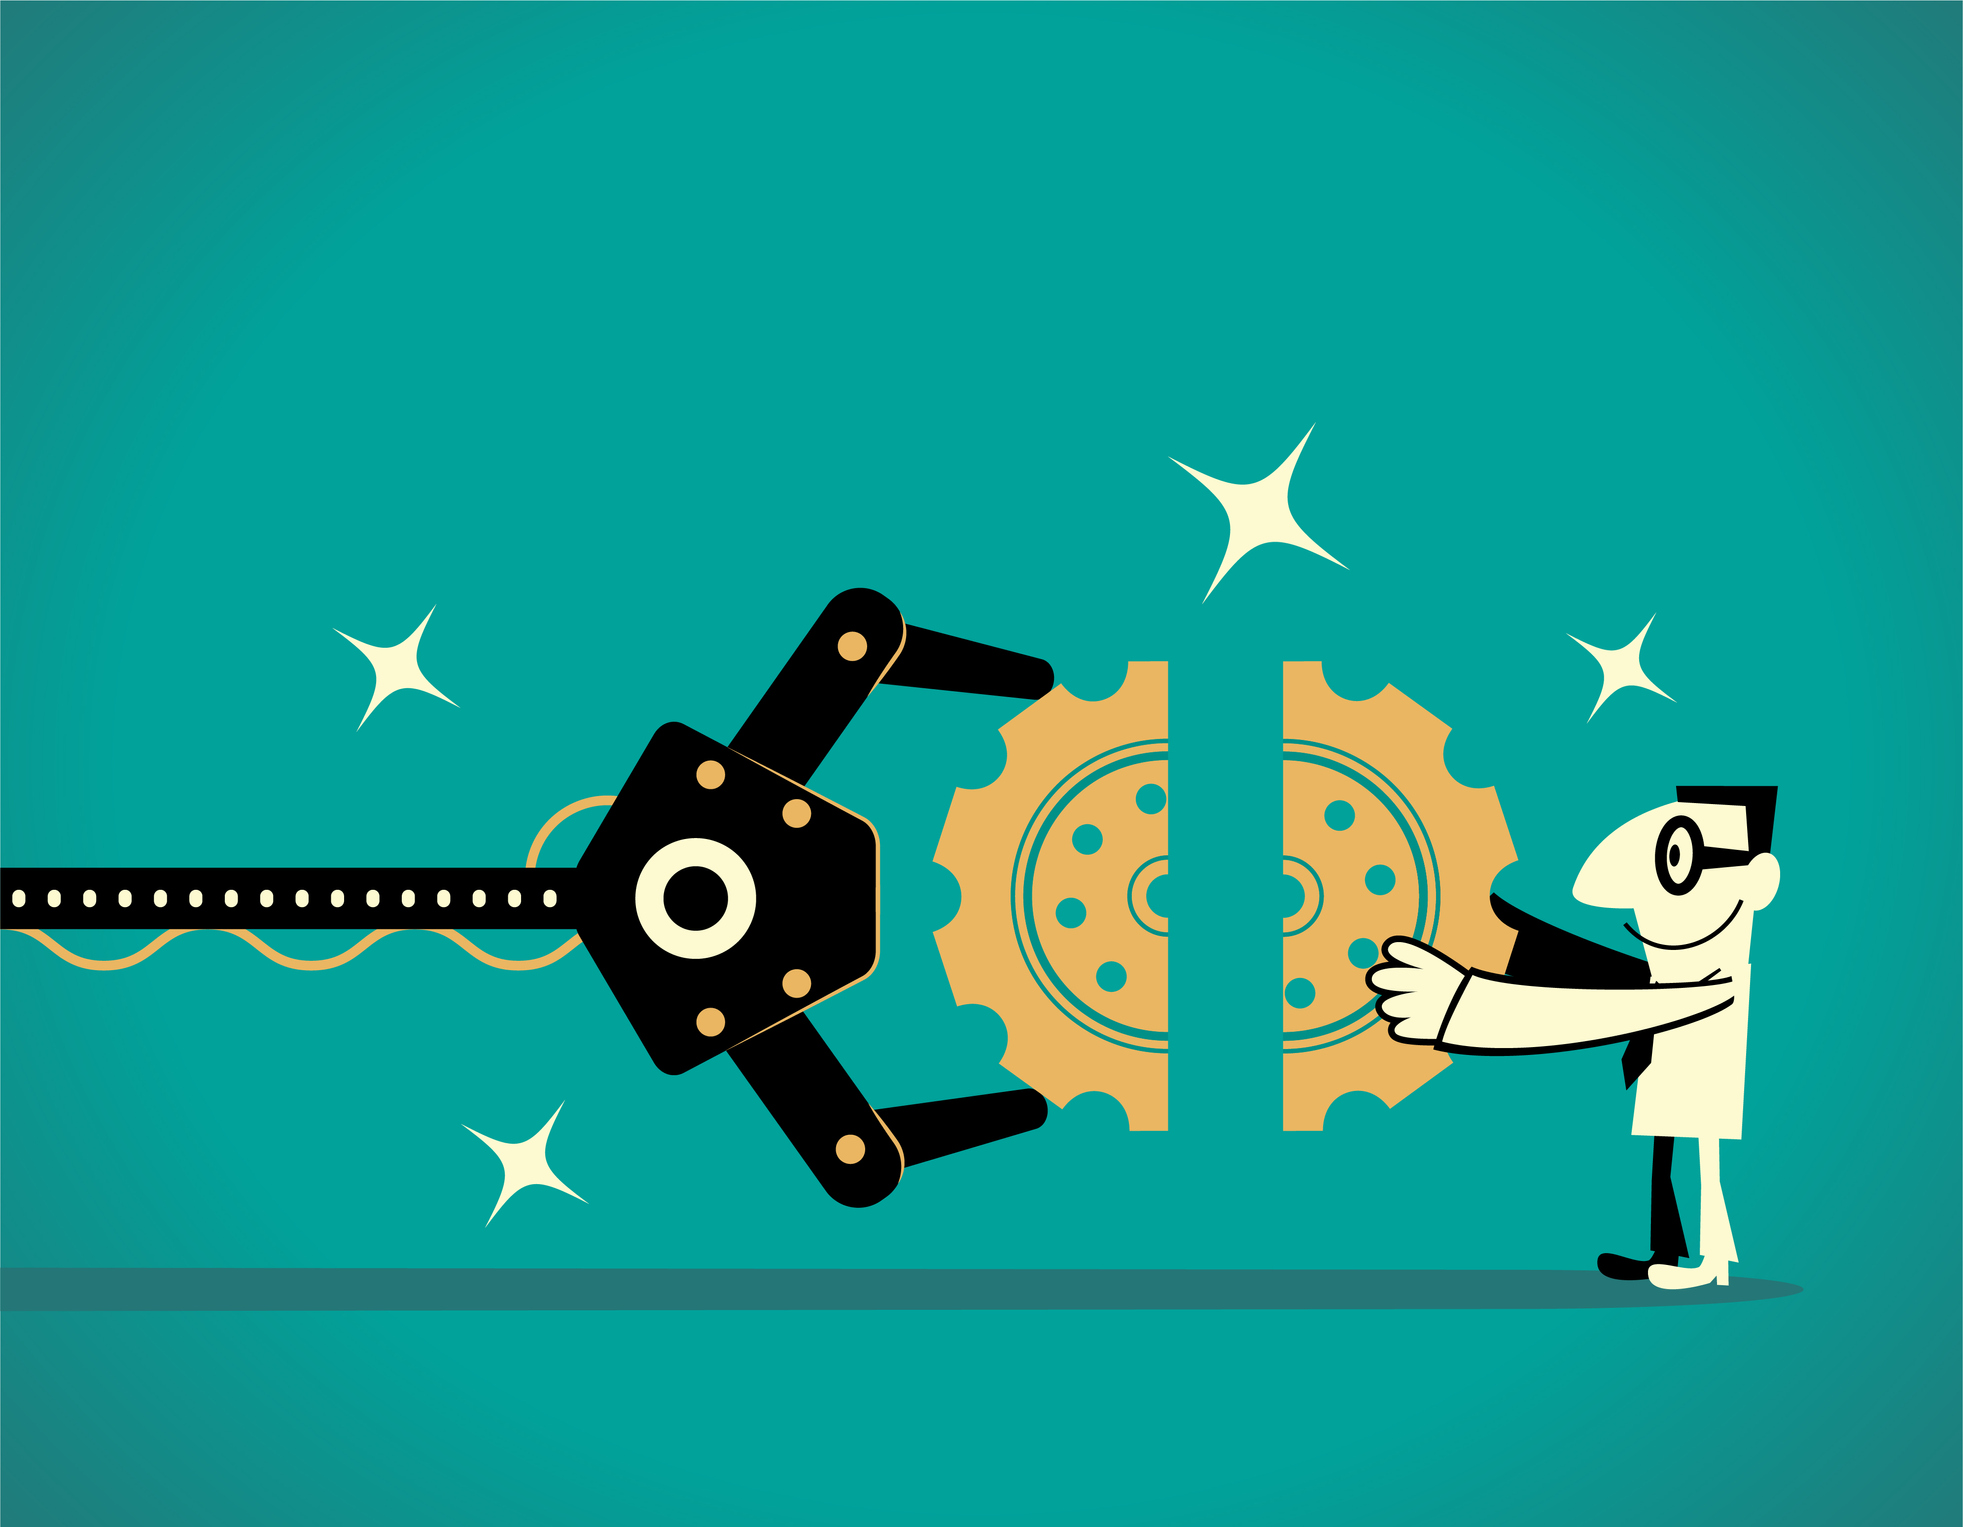 Artificial intelligence robot arm and businessman completing gear jigsaw puzzle (teamwork).